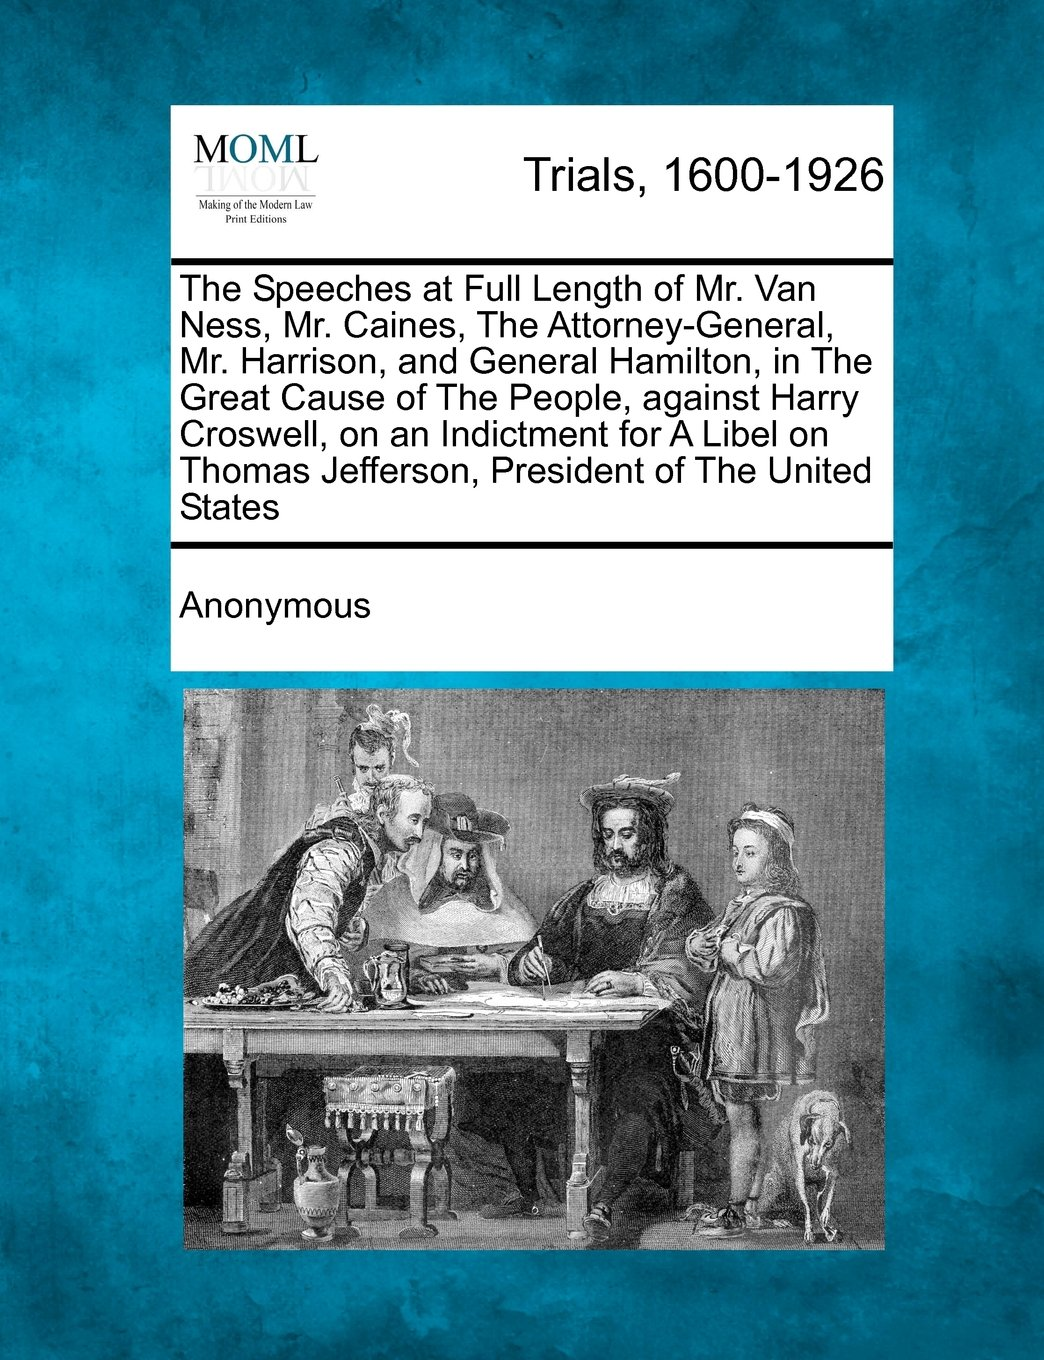 The Speeches at Full Length of Mr. Van Ness, Mr. Caines, The Attorney-General, Mr. Harrison, and General Hamilton, in The Great Cause of The People, ... Jefferson, President of The United States pdf epub